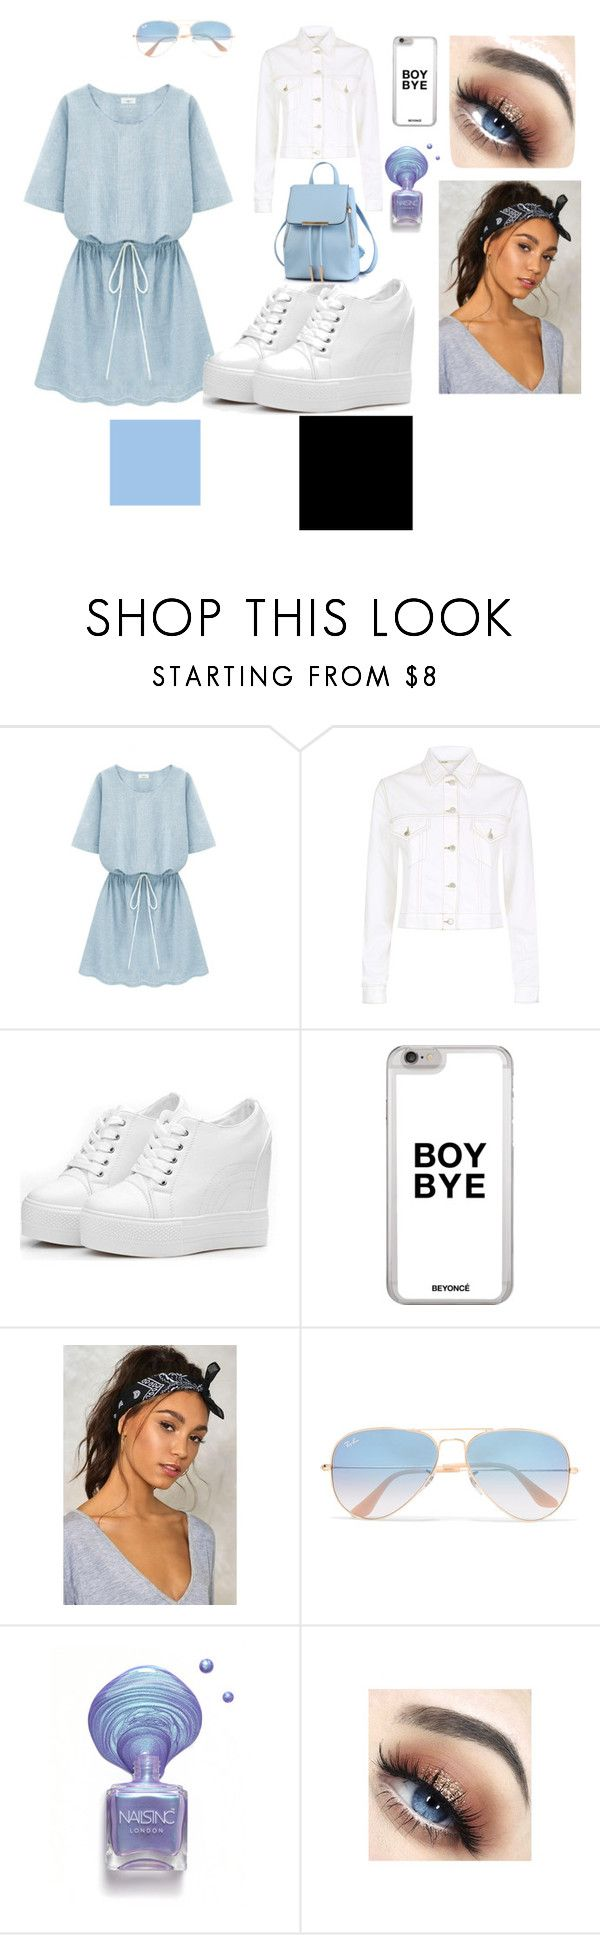 #1 by una-s on Polyvore featuring moda, Maje, Nasty Gal and Ray-Ban